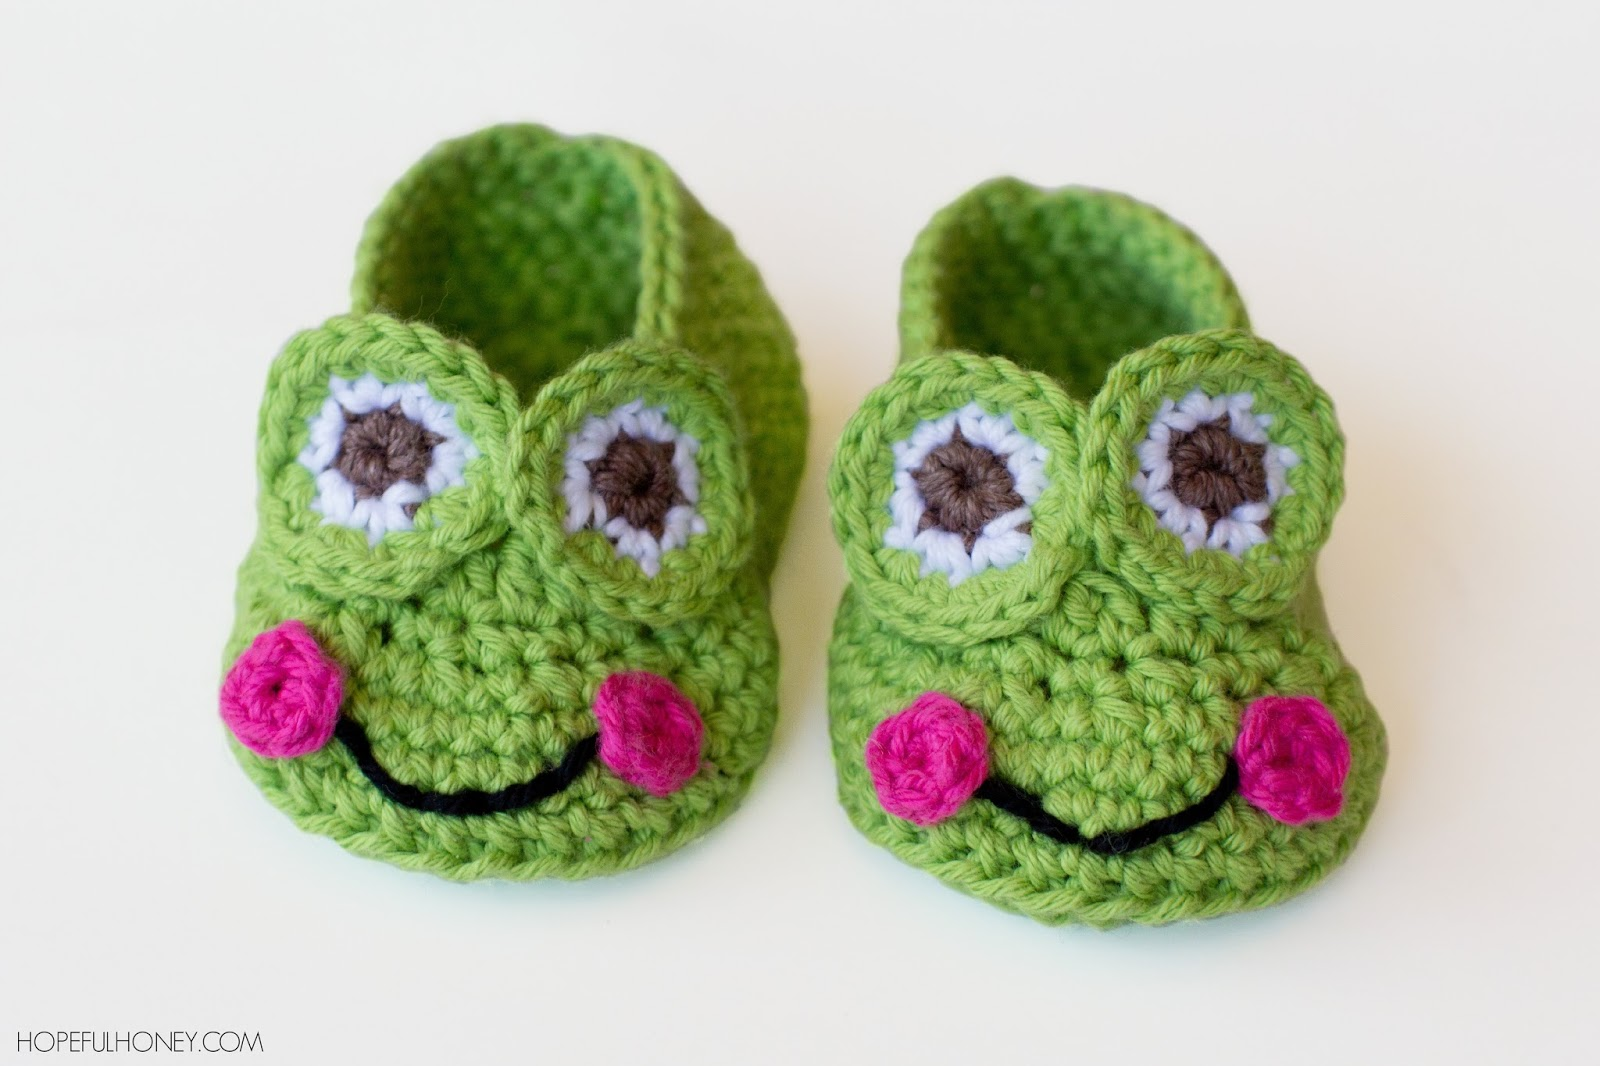 Hopeful Honey | Craft, Crochet, Create: Frog Baby Booties Crochet ...